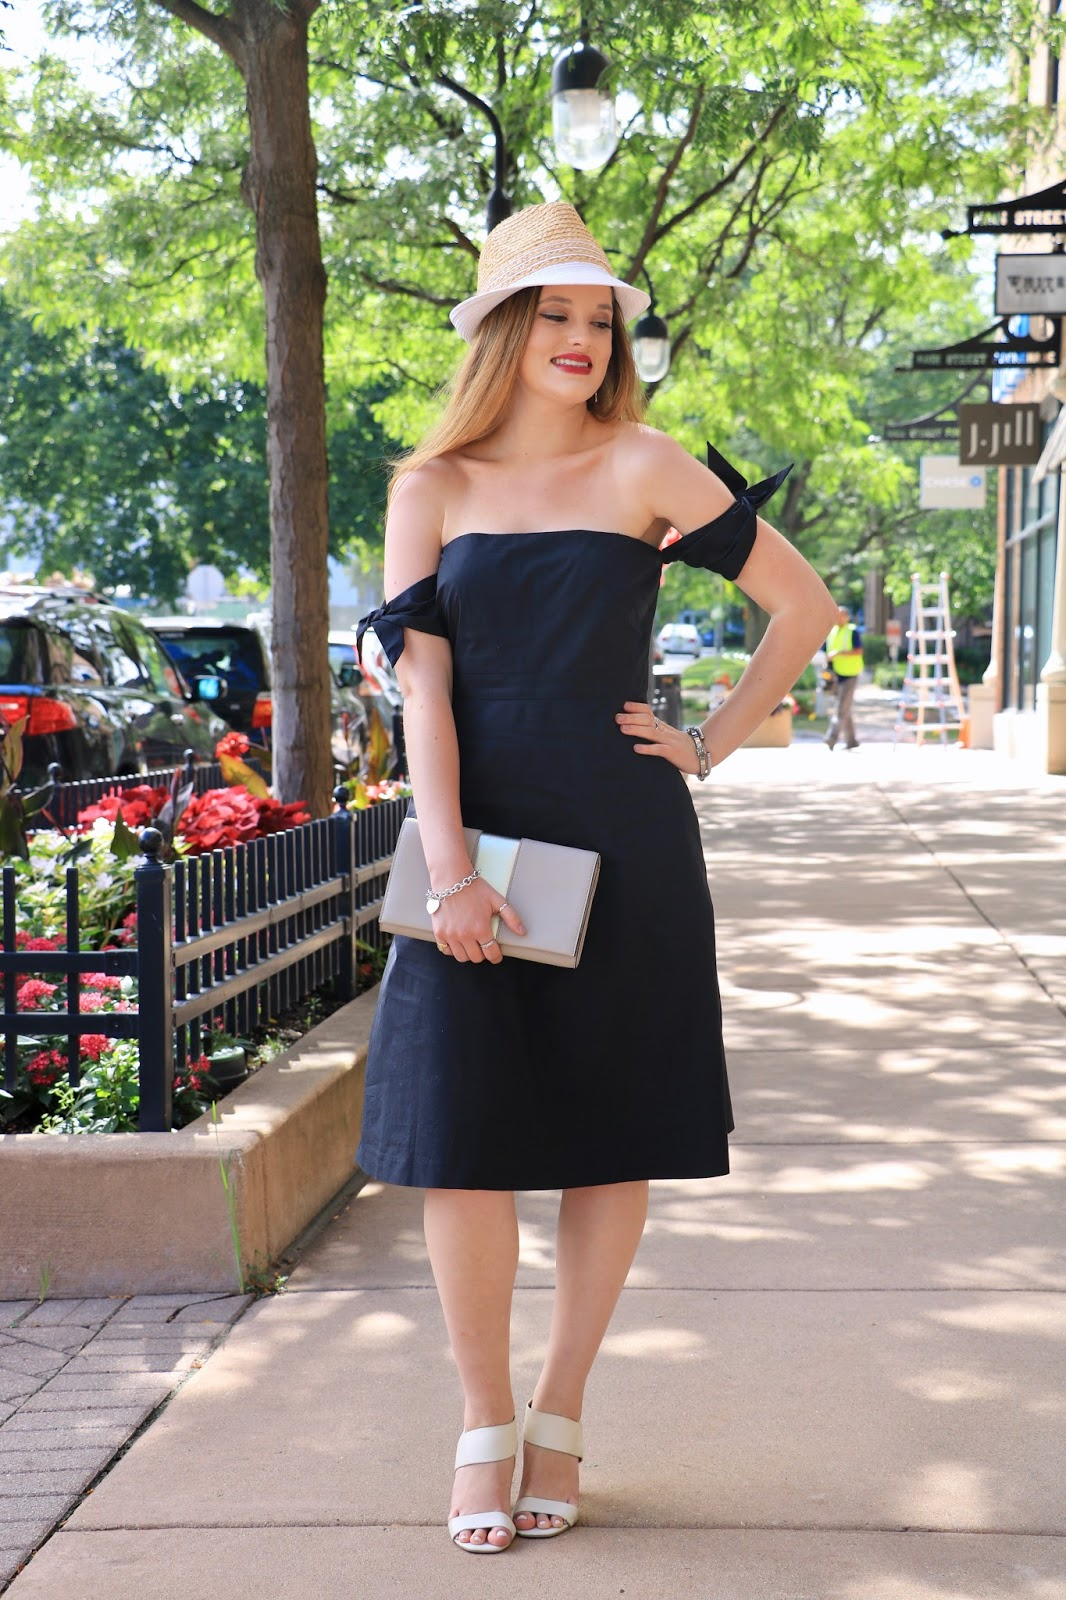 Fashion blogger Kathleen Harper of Kat's Fashion Fix wearing a black dress